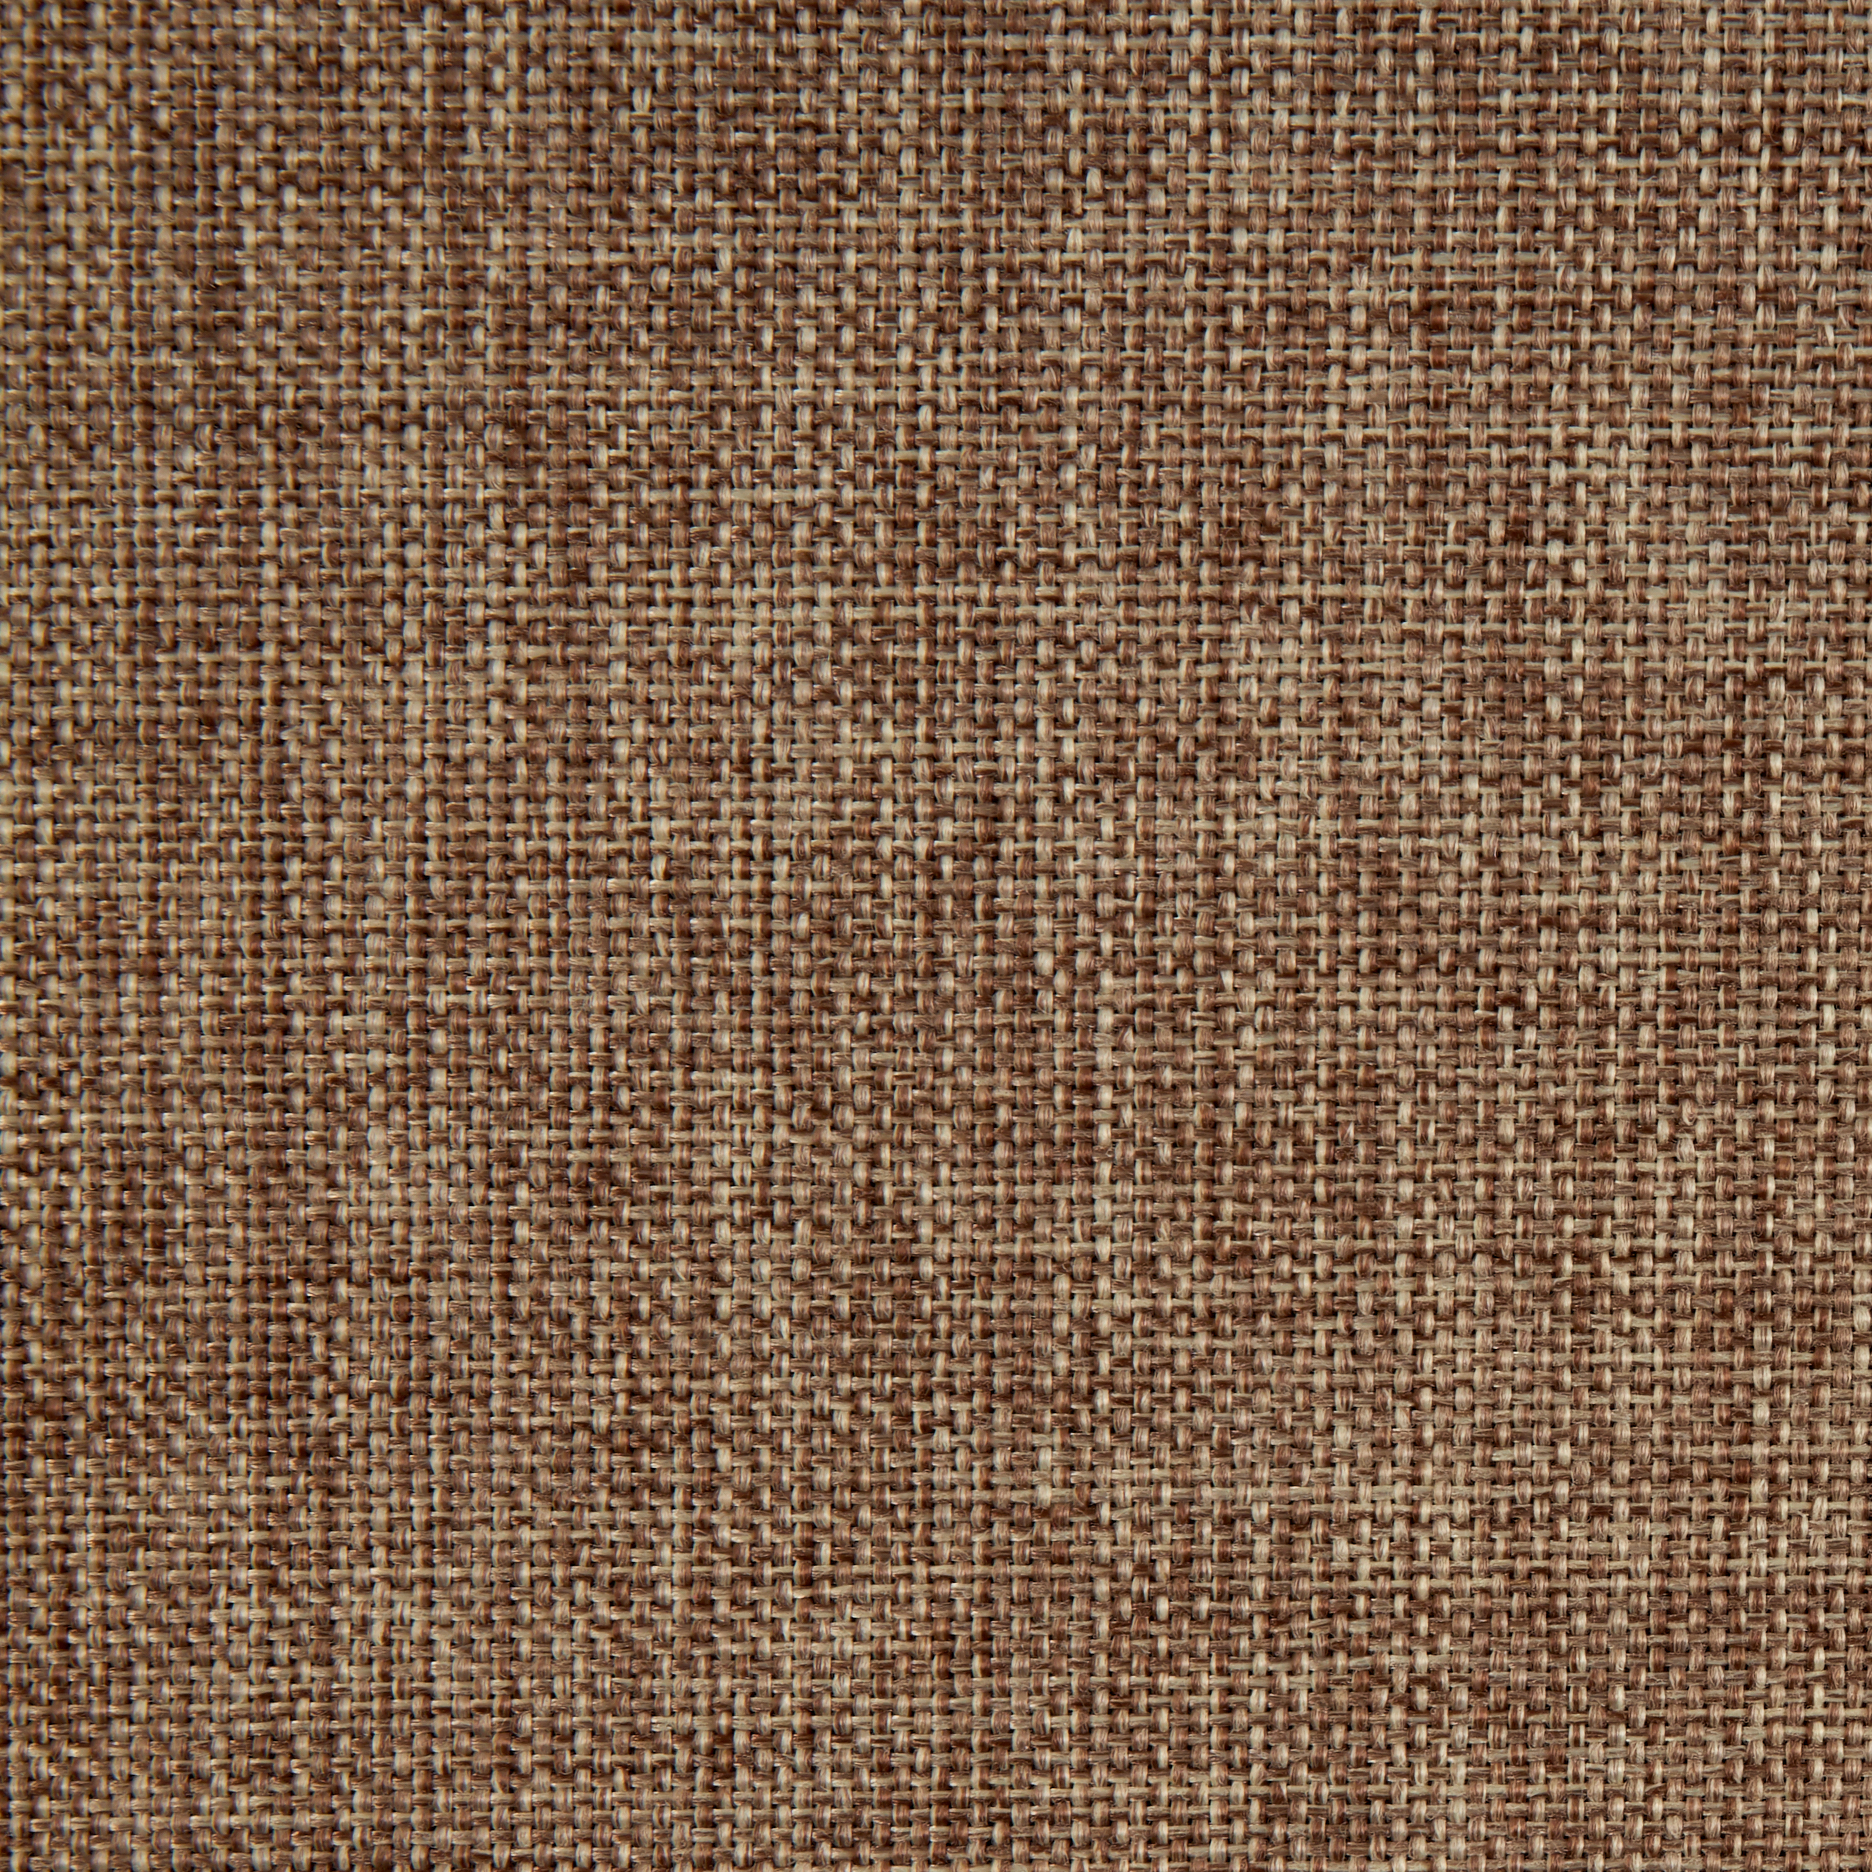 Eroica Cosmo Linen Linen Fabric by Eroica in USA